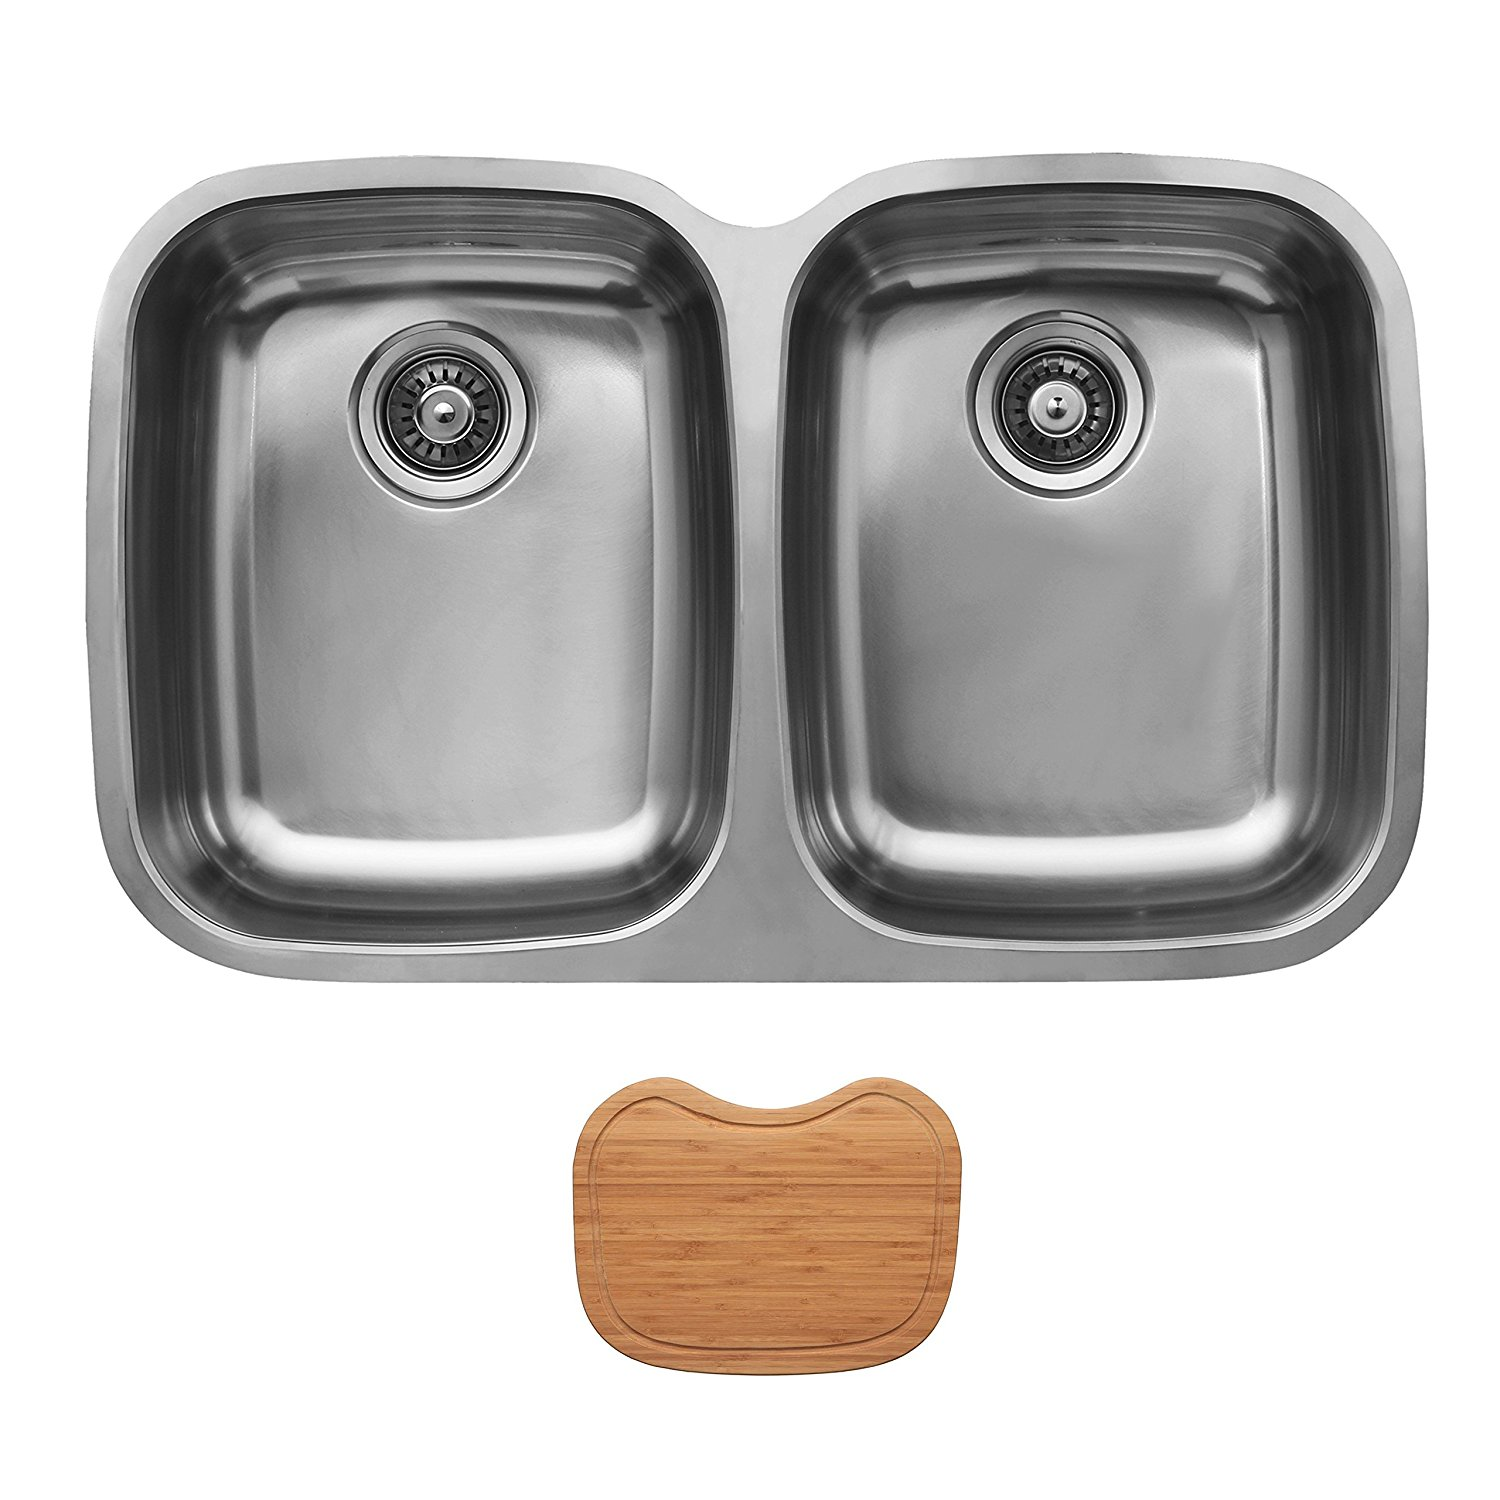 Ukinox D376.50.50.10.C Undermount Double Bowl Stainless Steel Kitchen Sink With Cutting Board